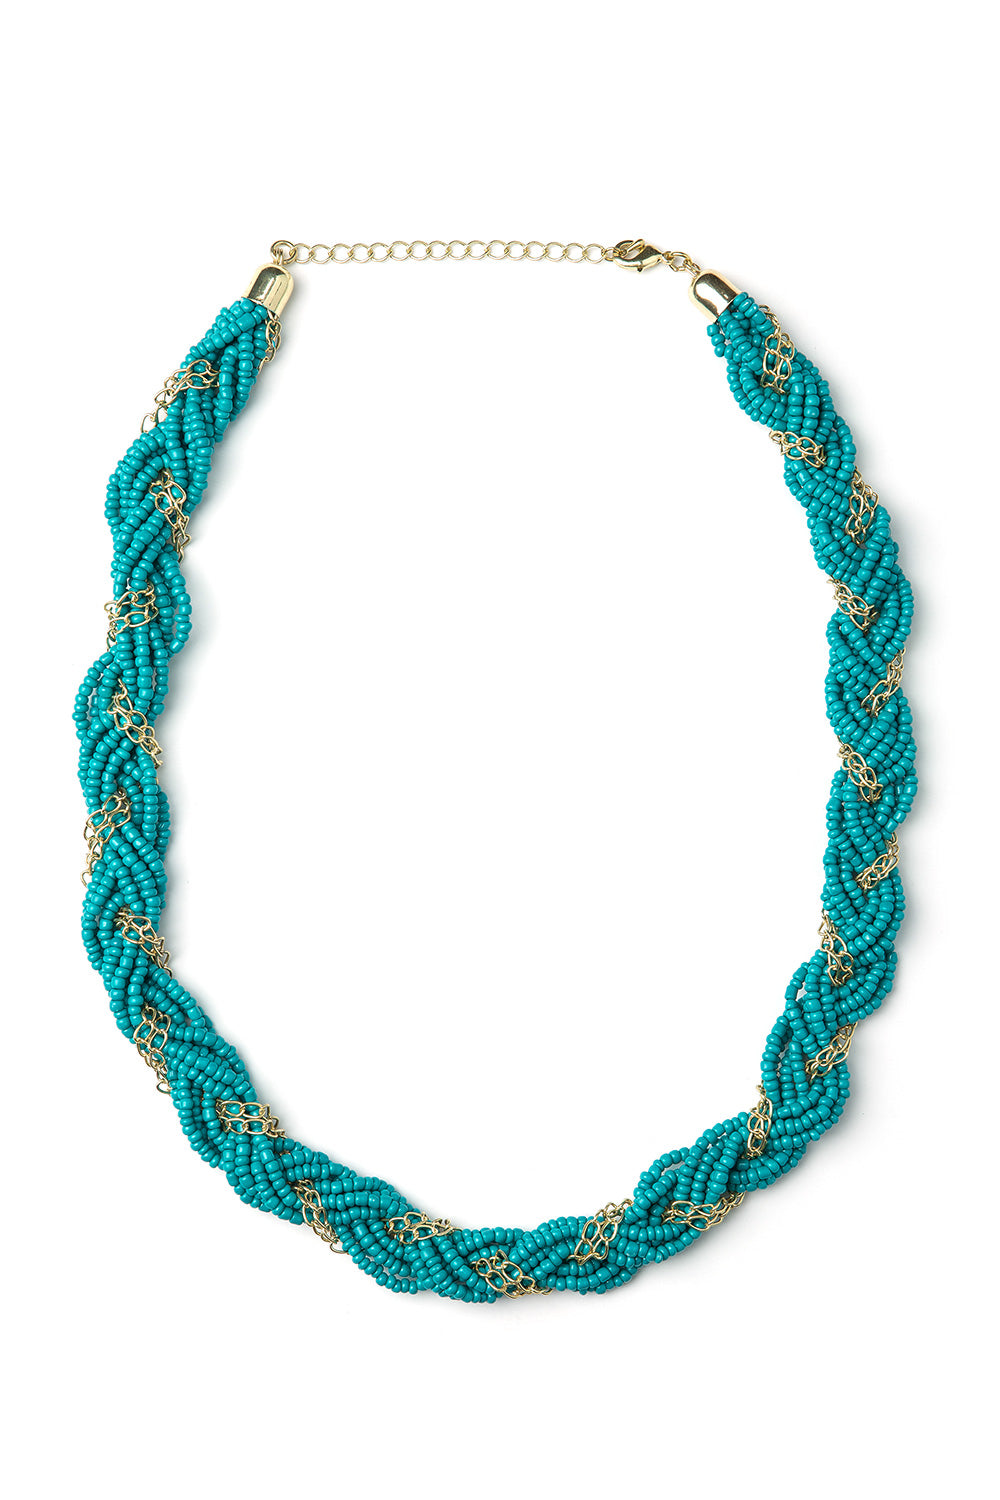 Type 3 French Braid Necklace